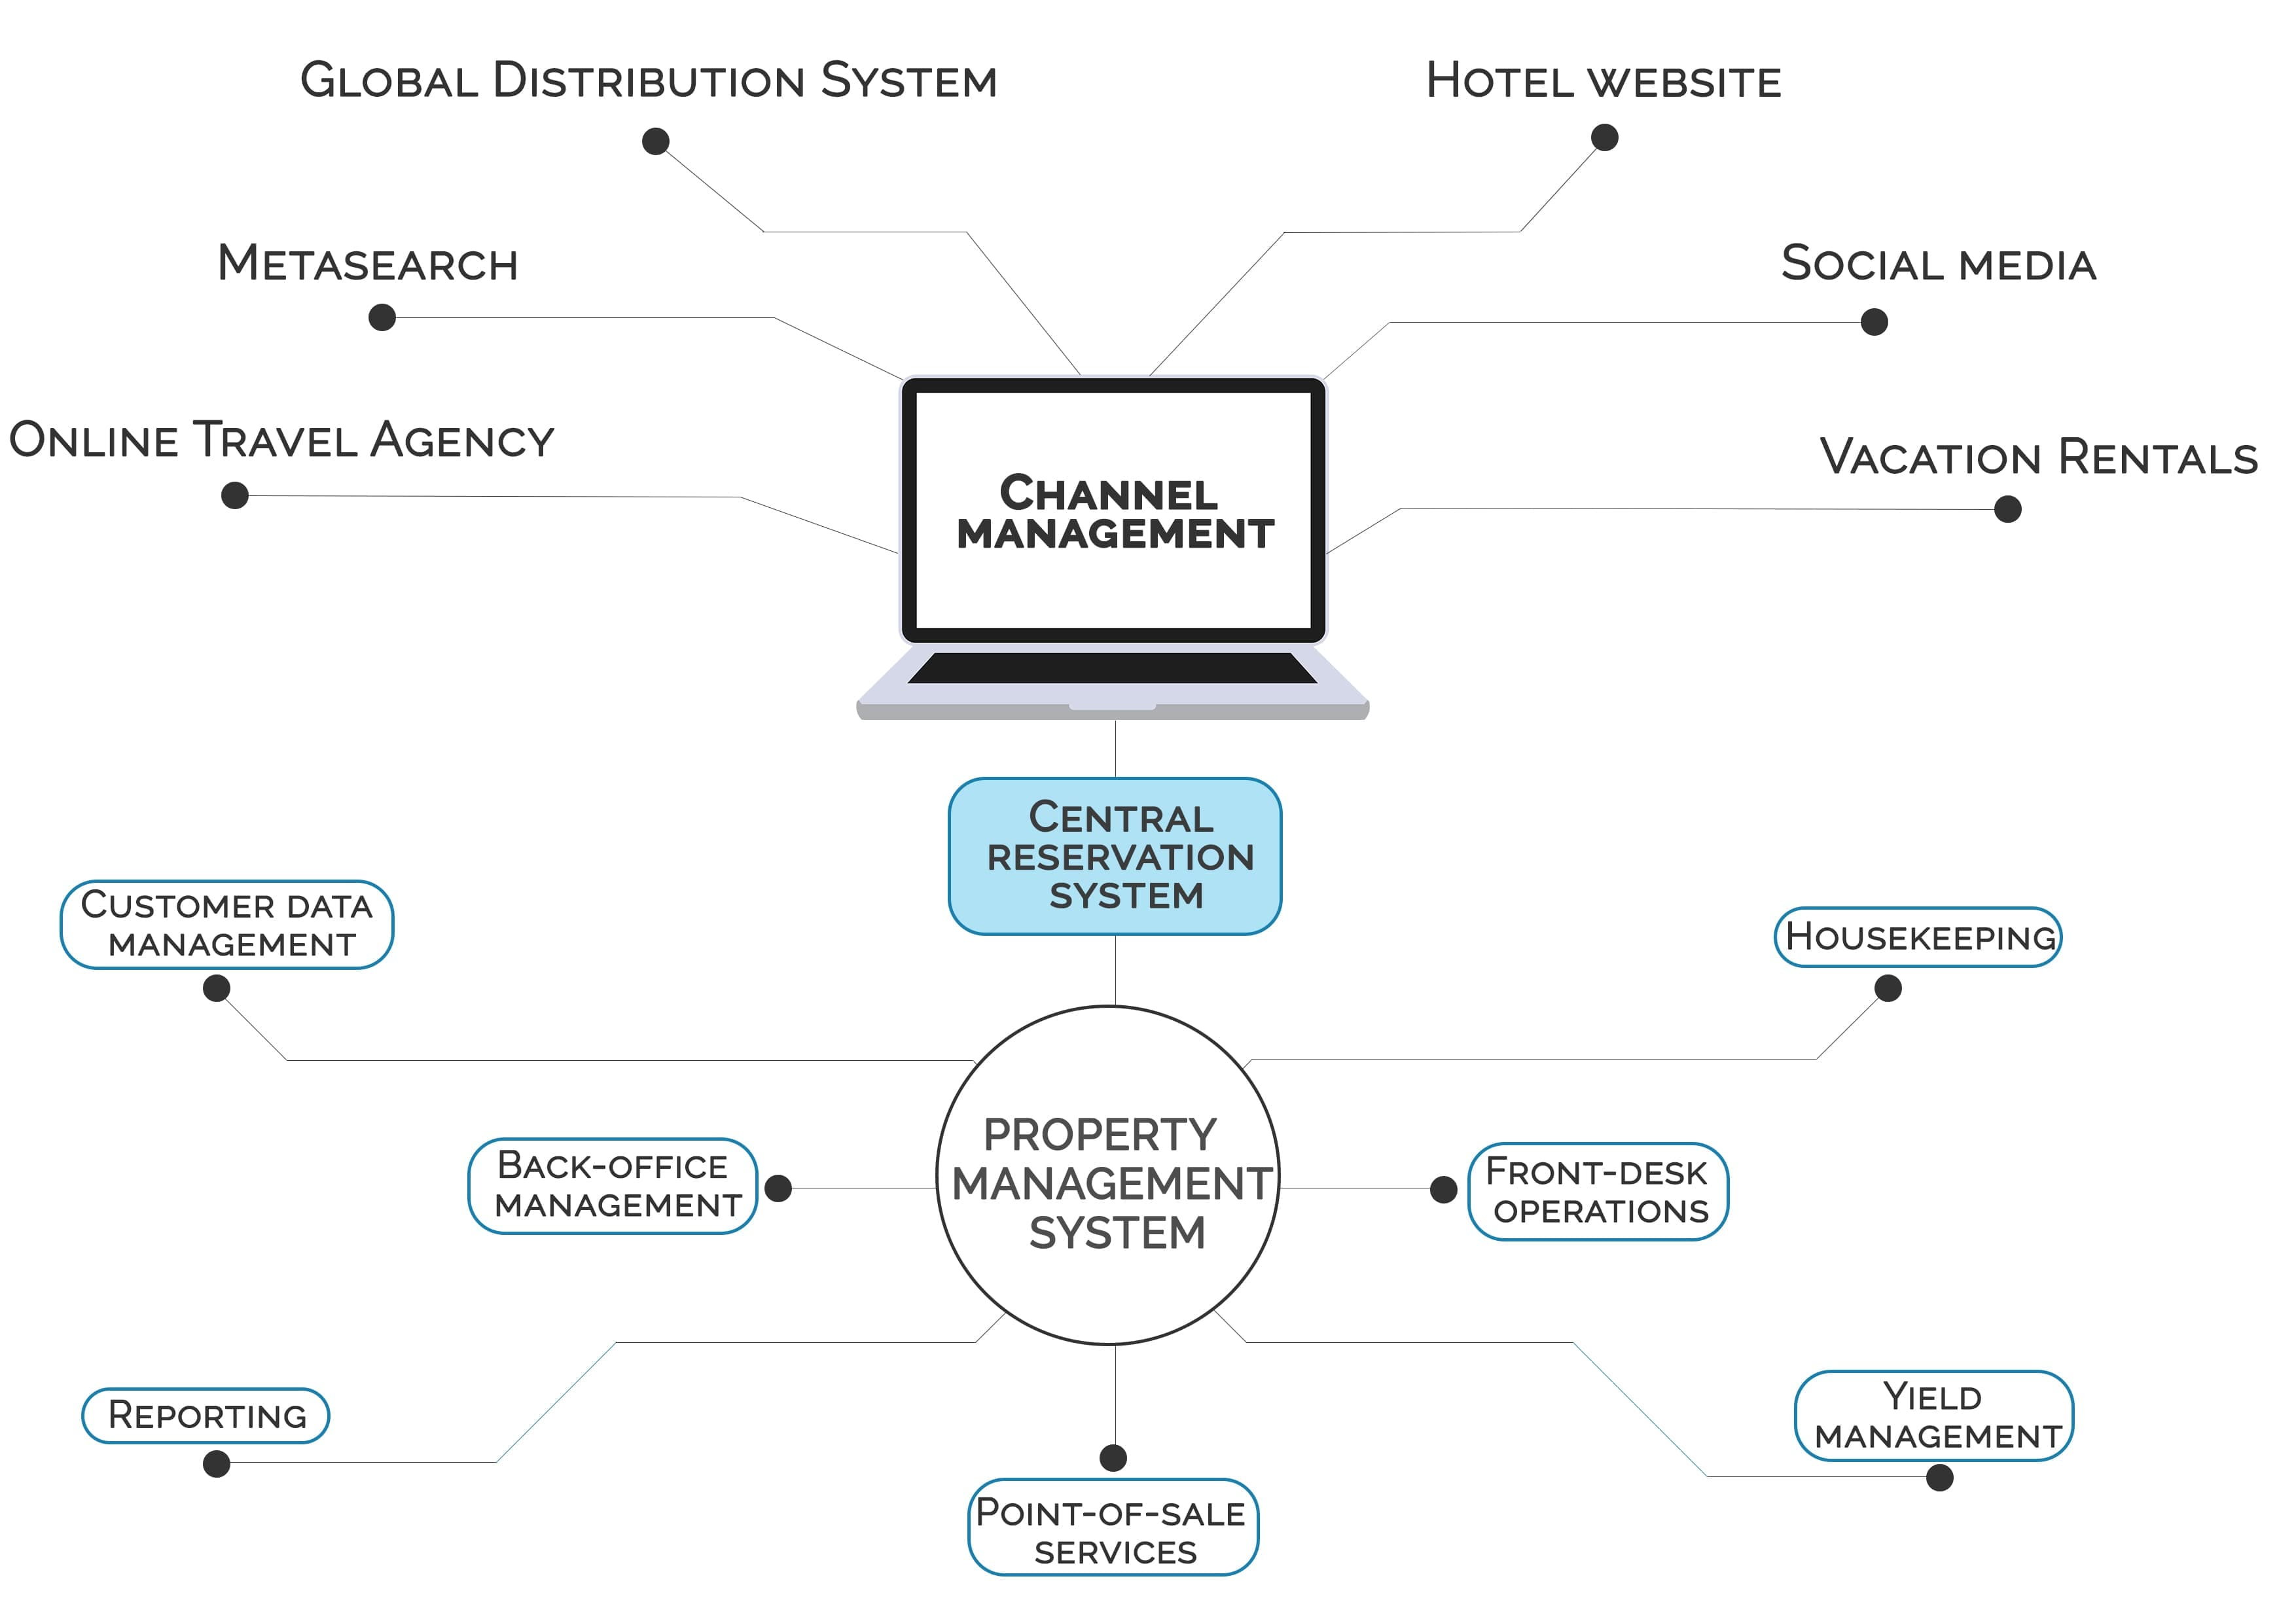 Hotel Property Management Systems Their Core Functionality And Characteristics Ddi Development